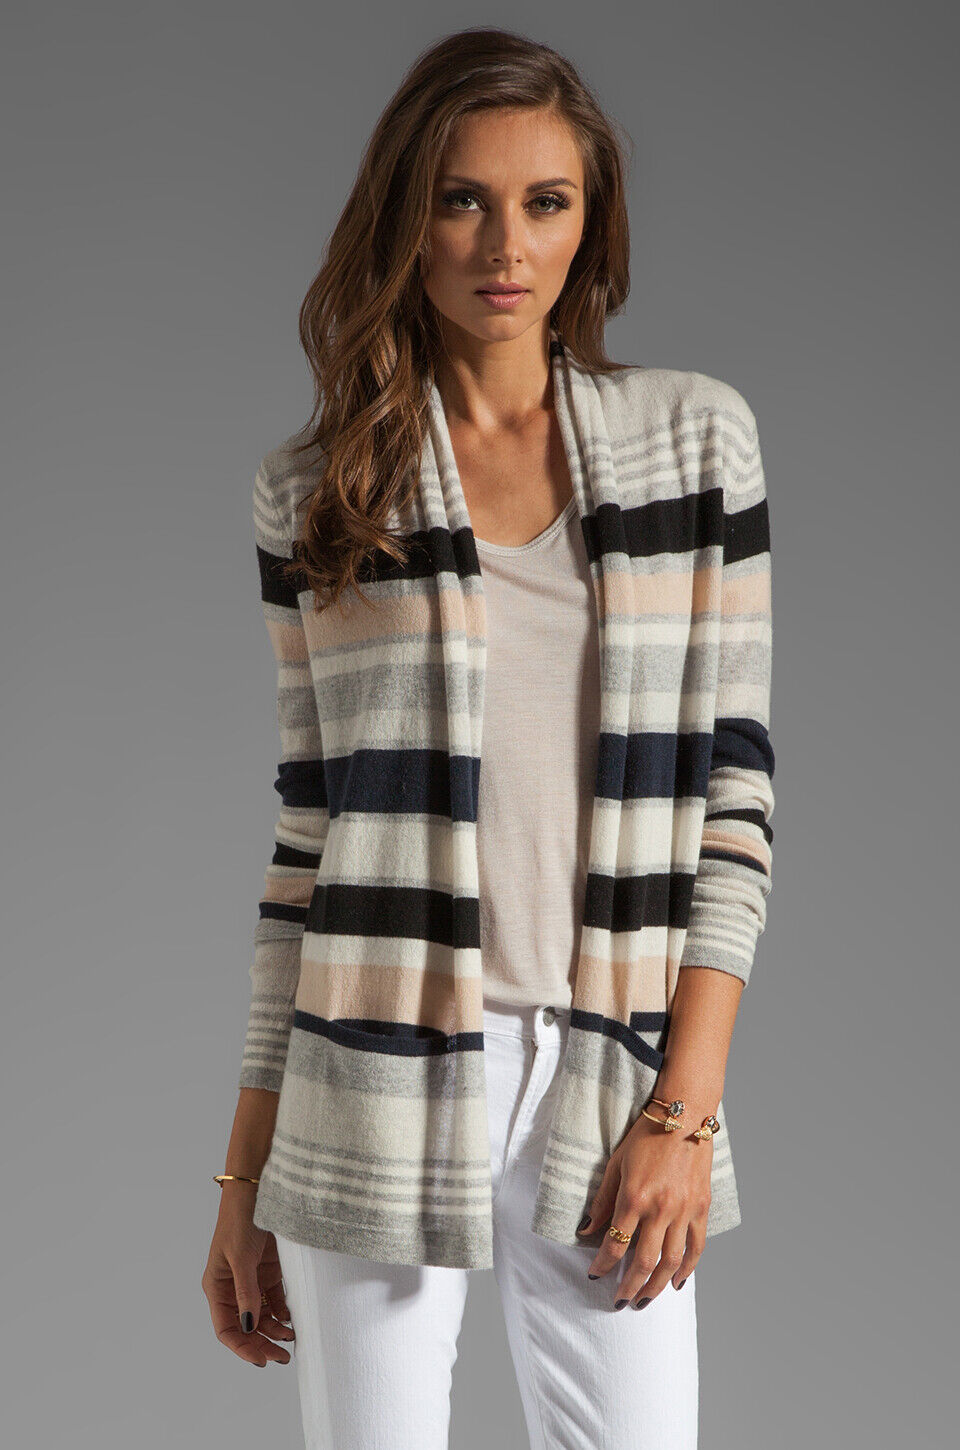 NEW Autumn Cashmere Multi Stripe Drape Sweater in Neutral Combo- Size M